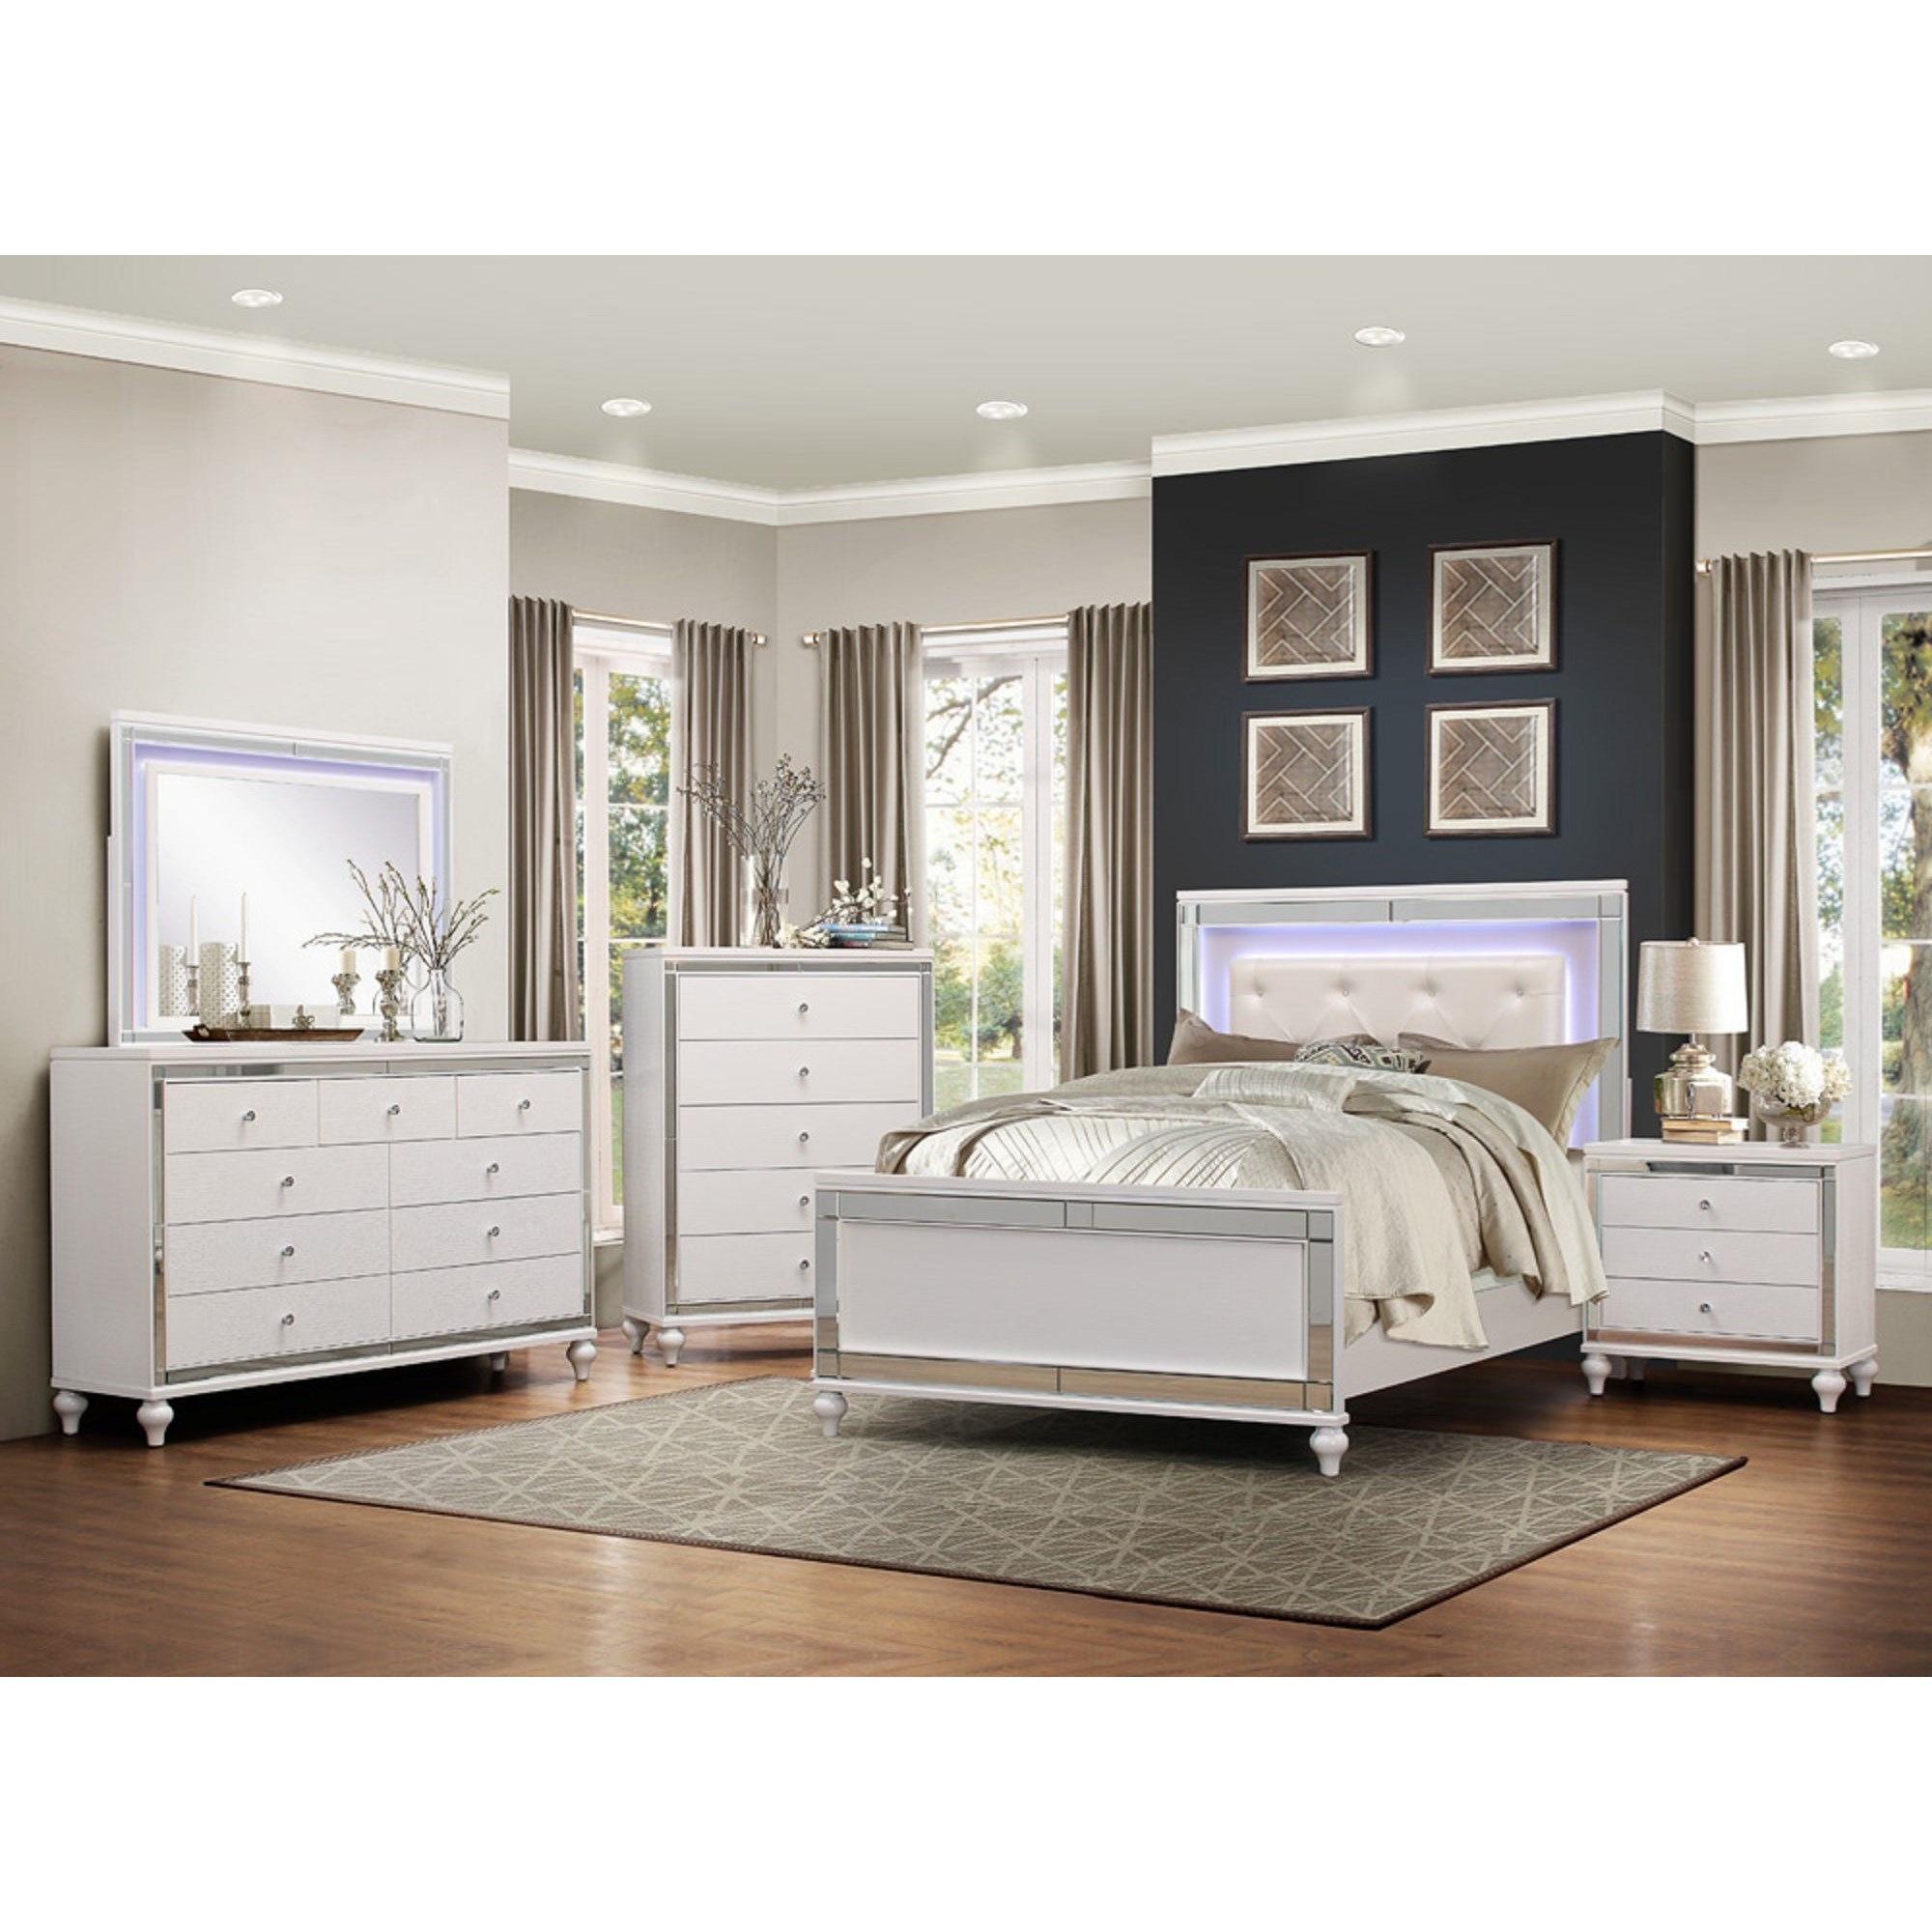 Alonza Queen Bedroom Group without Chest by Homelegance at Carolina Direct